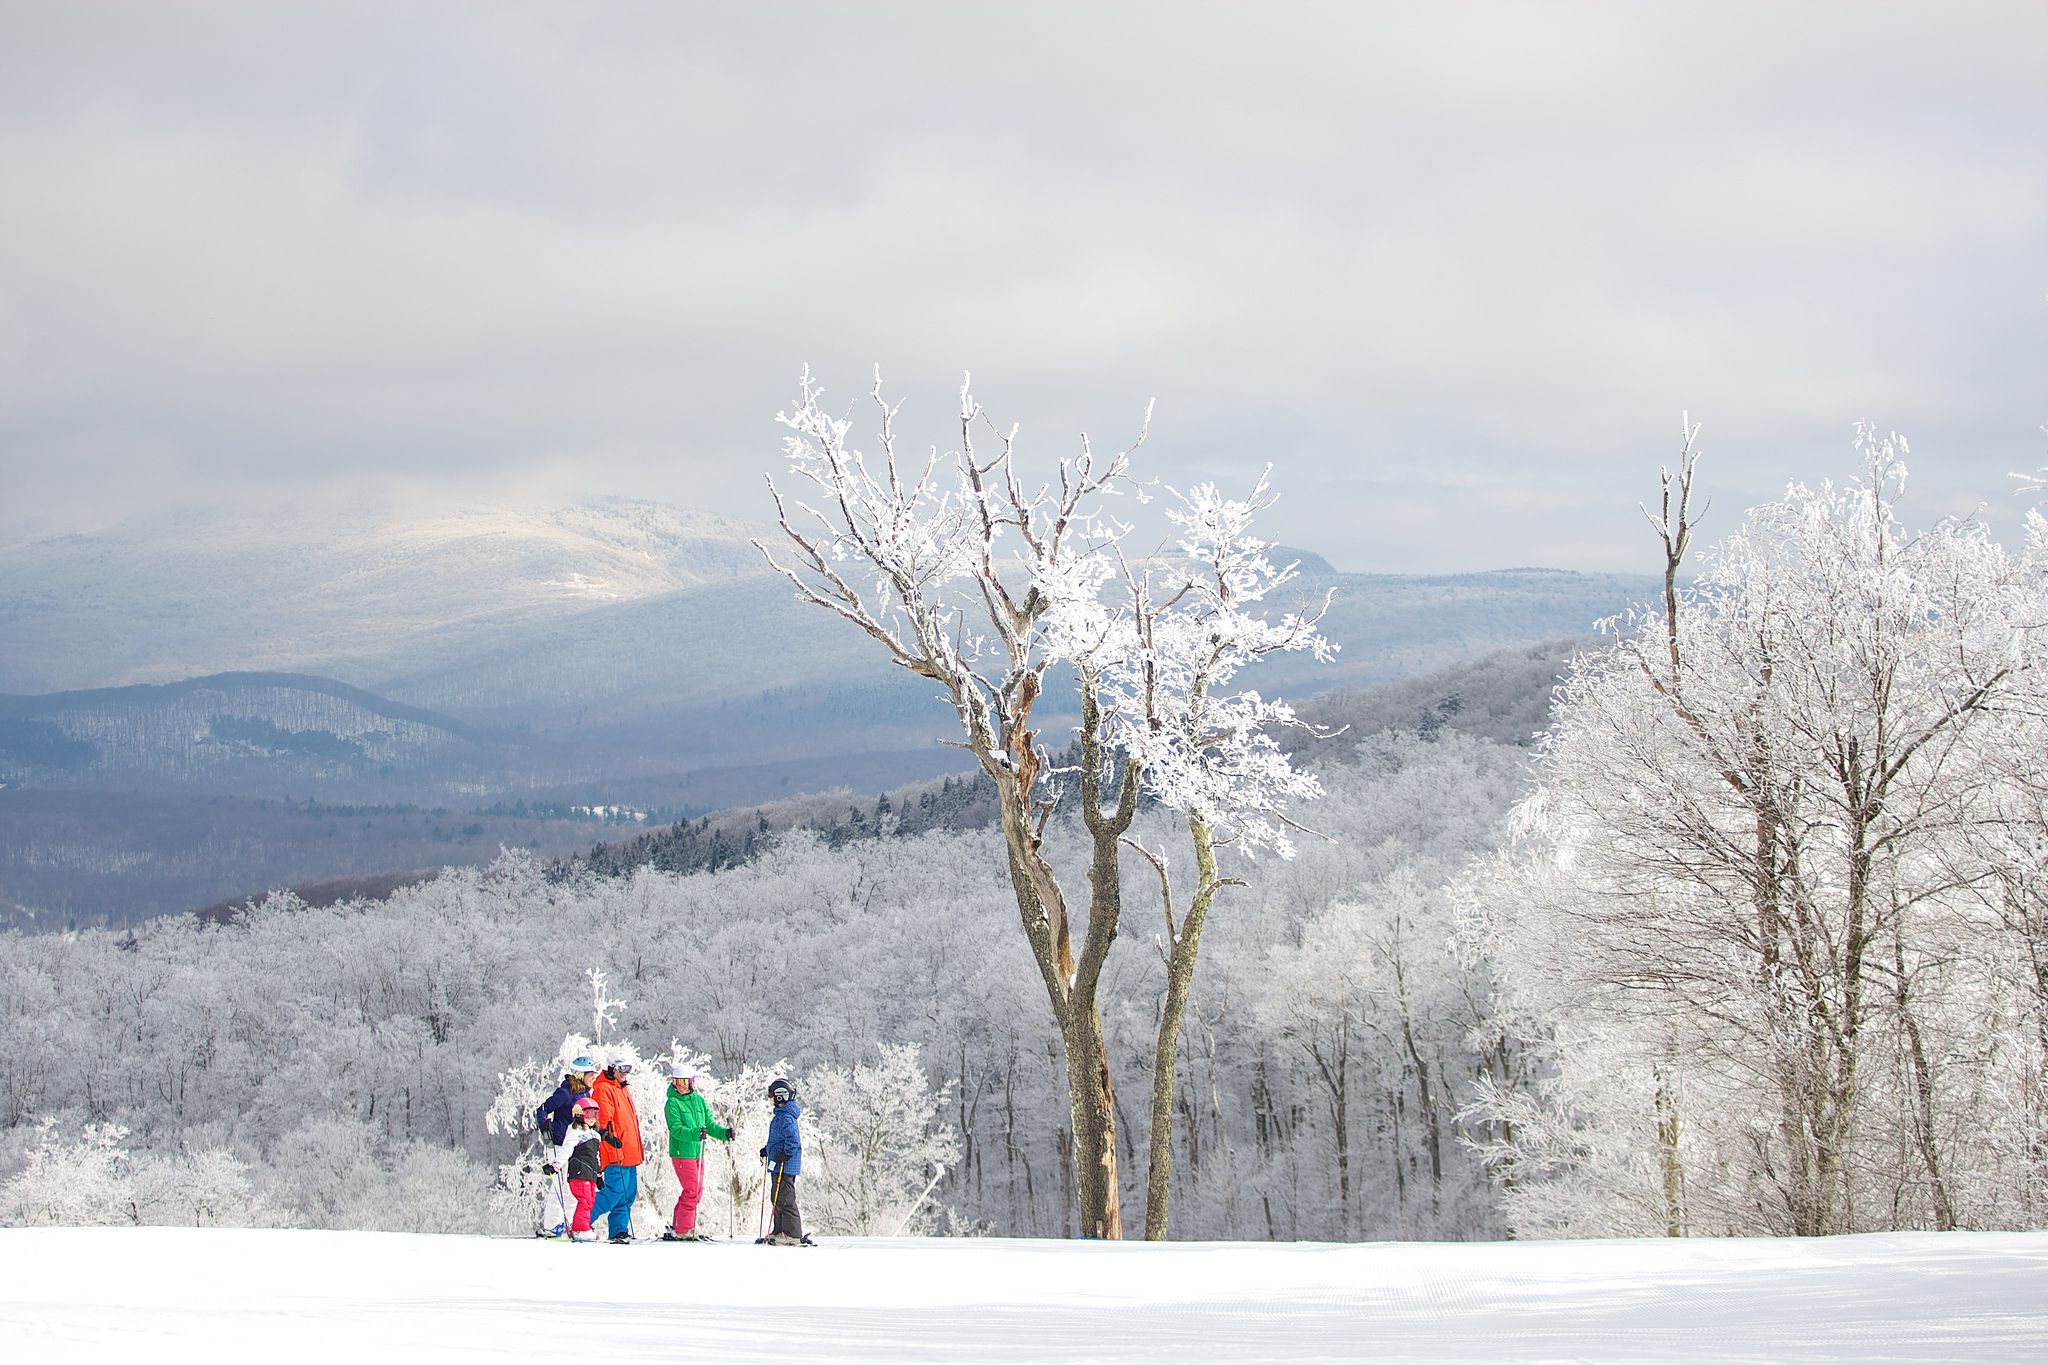 skiiers on jiminy peak ski resort